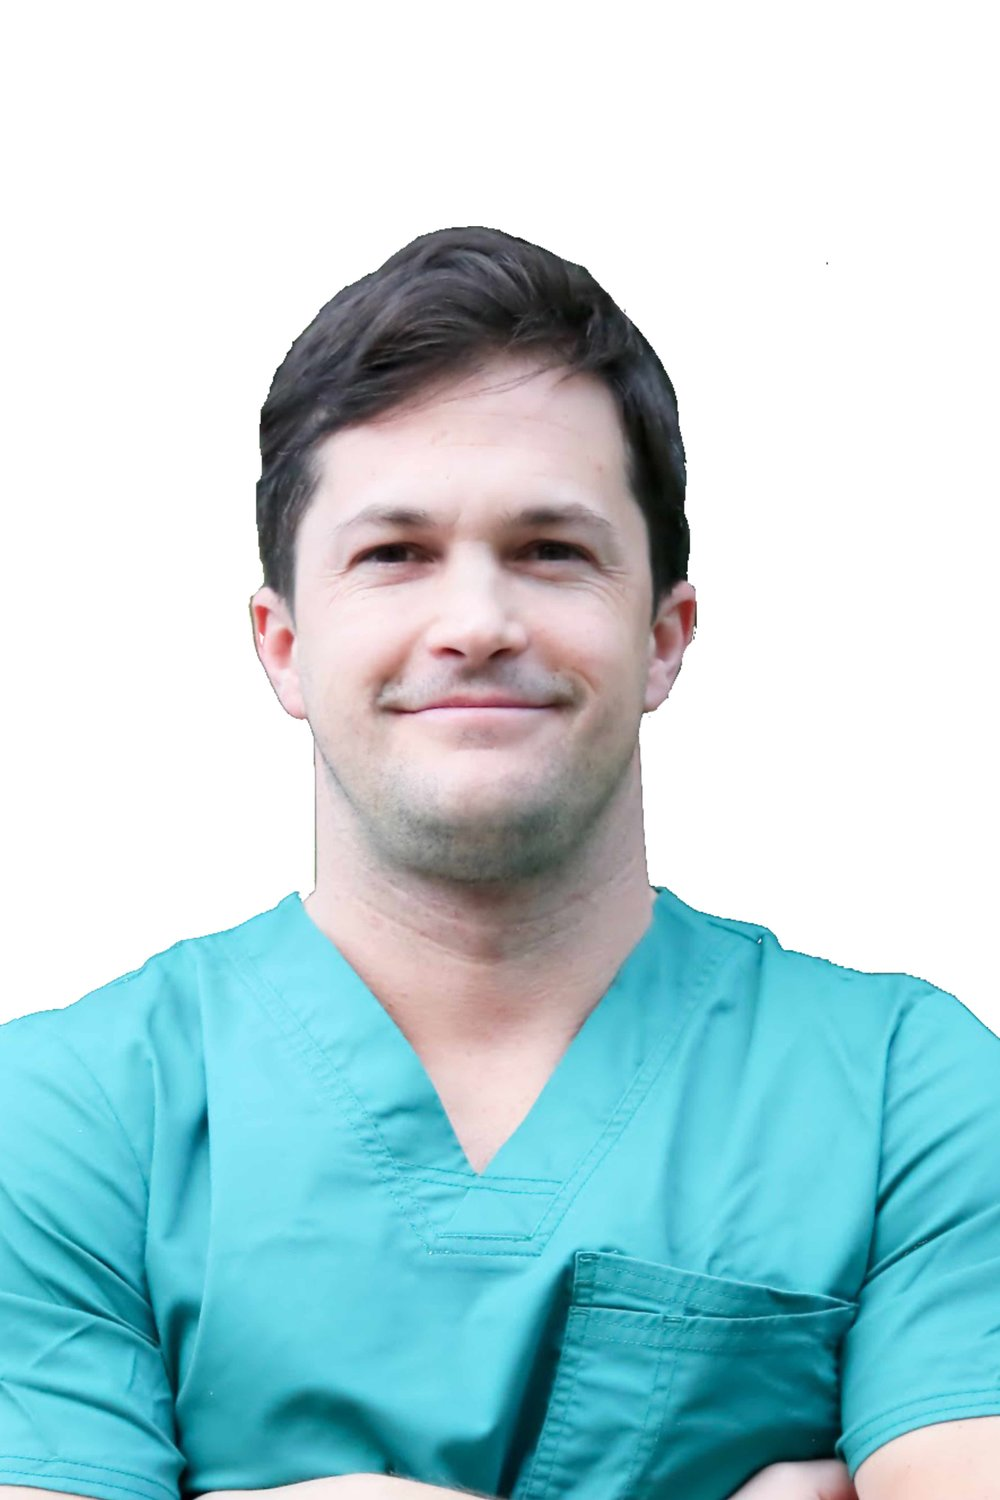 """Ivo Ferreira Rios, MD - Founder of Ophthalmology University and creator of the """"Mind Laboratory"""" concept, Ivo will travel all the way from Mexico City for this event, bringing with him his fresh approach to cataract surgical education."""